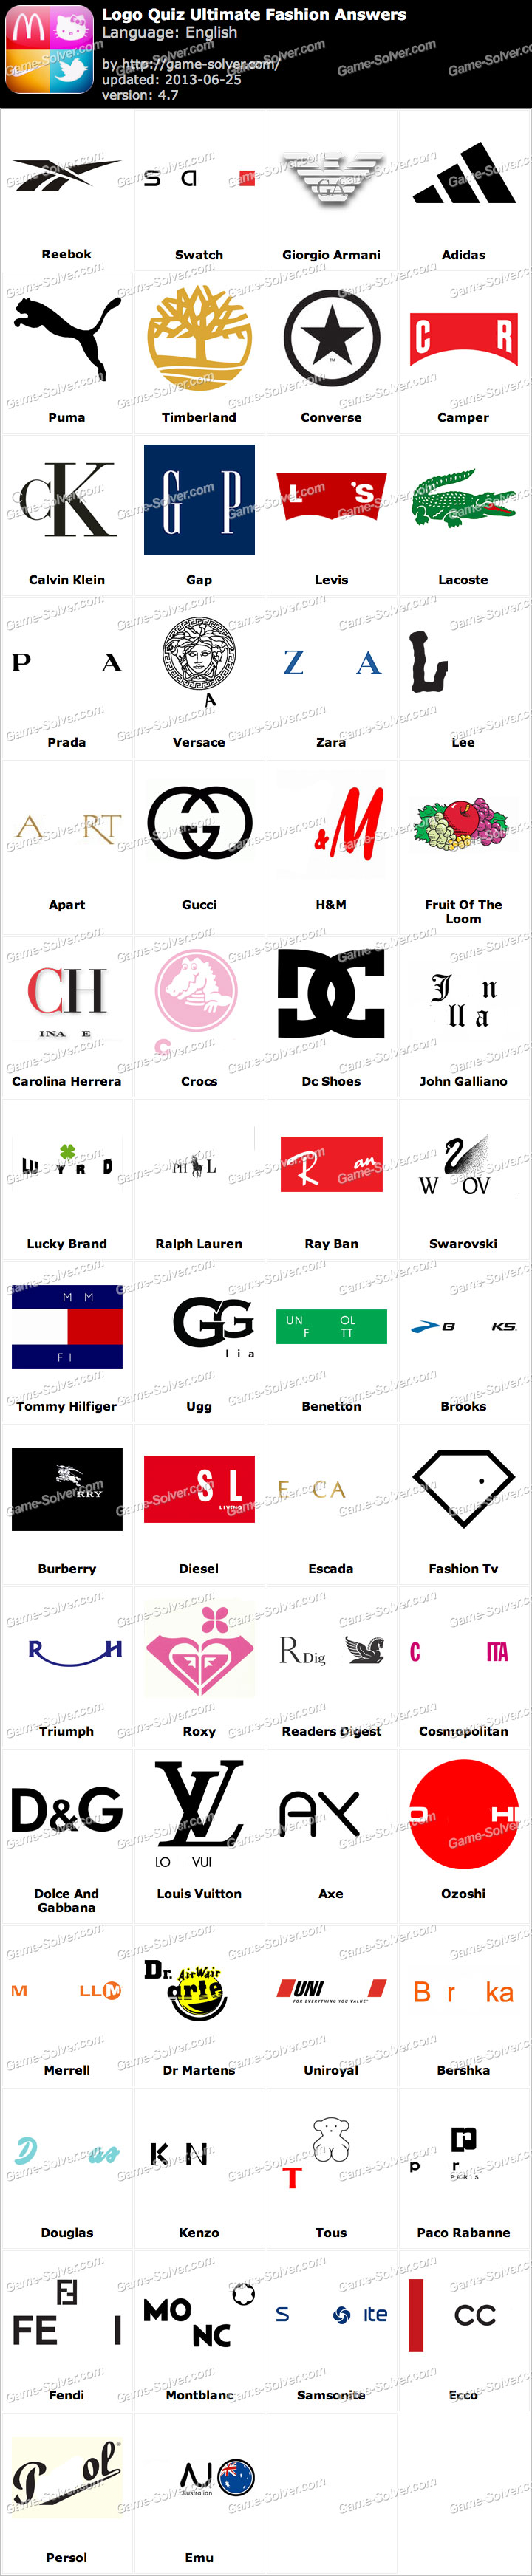 Italian Clothes Producer Logos